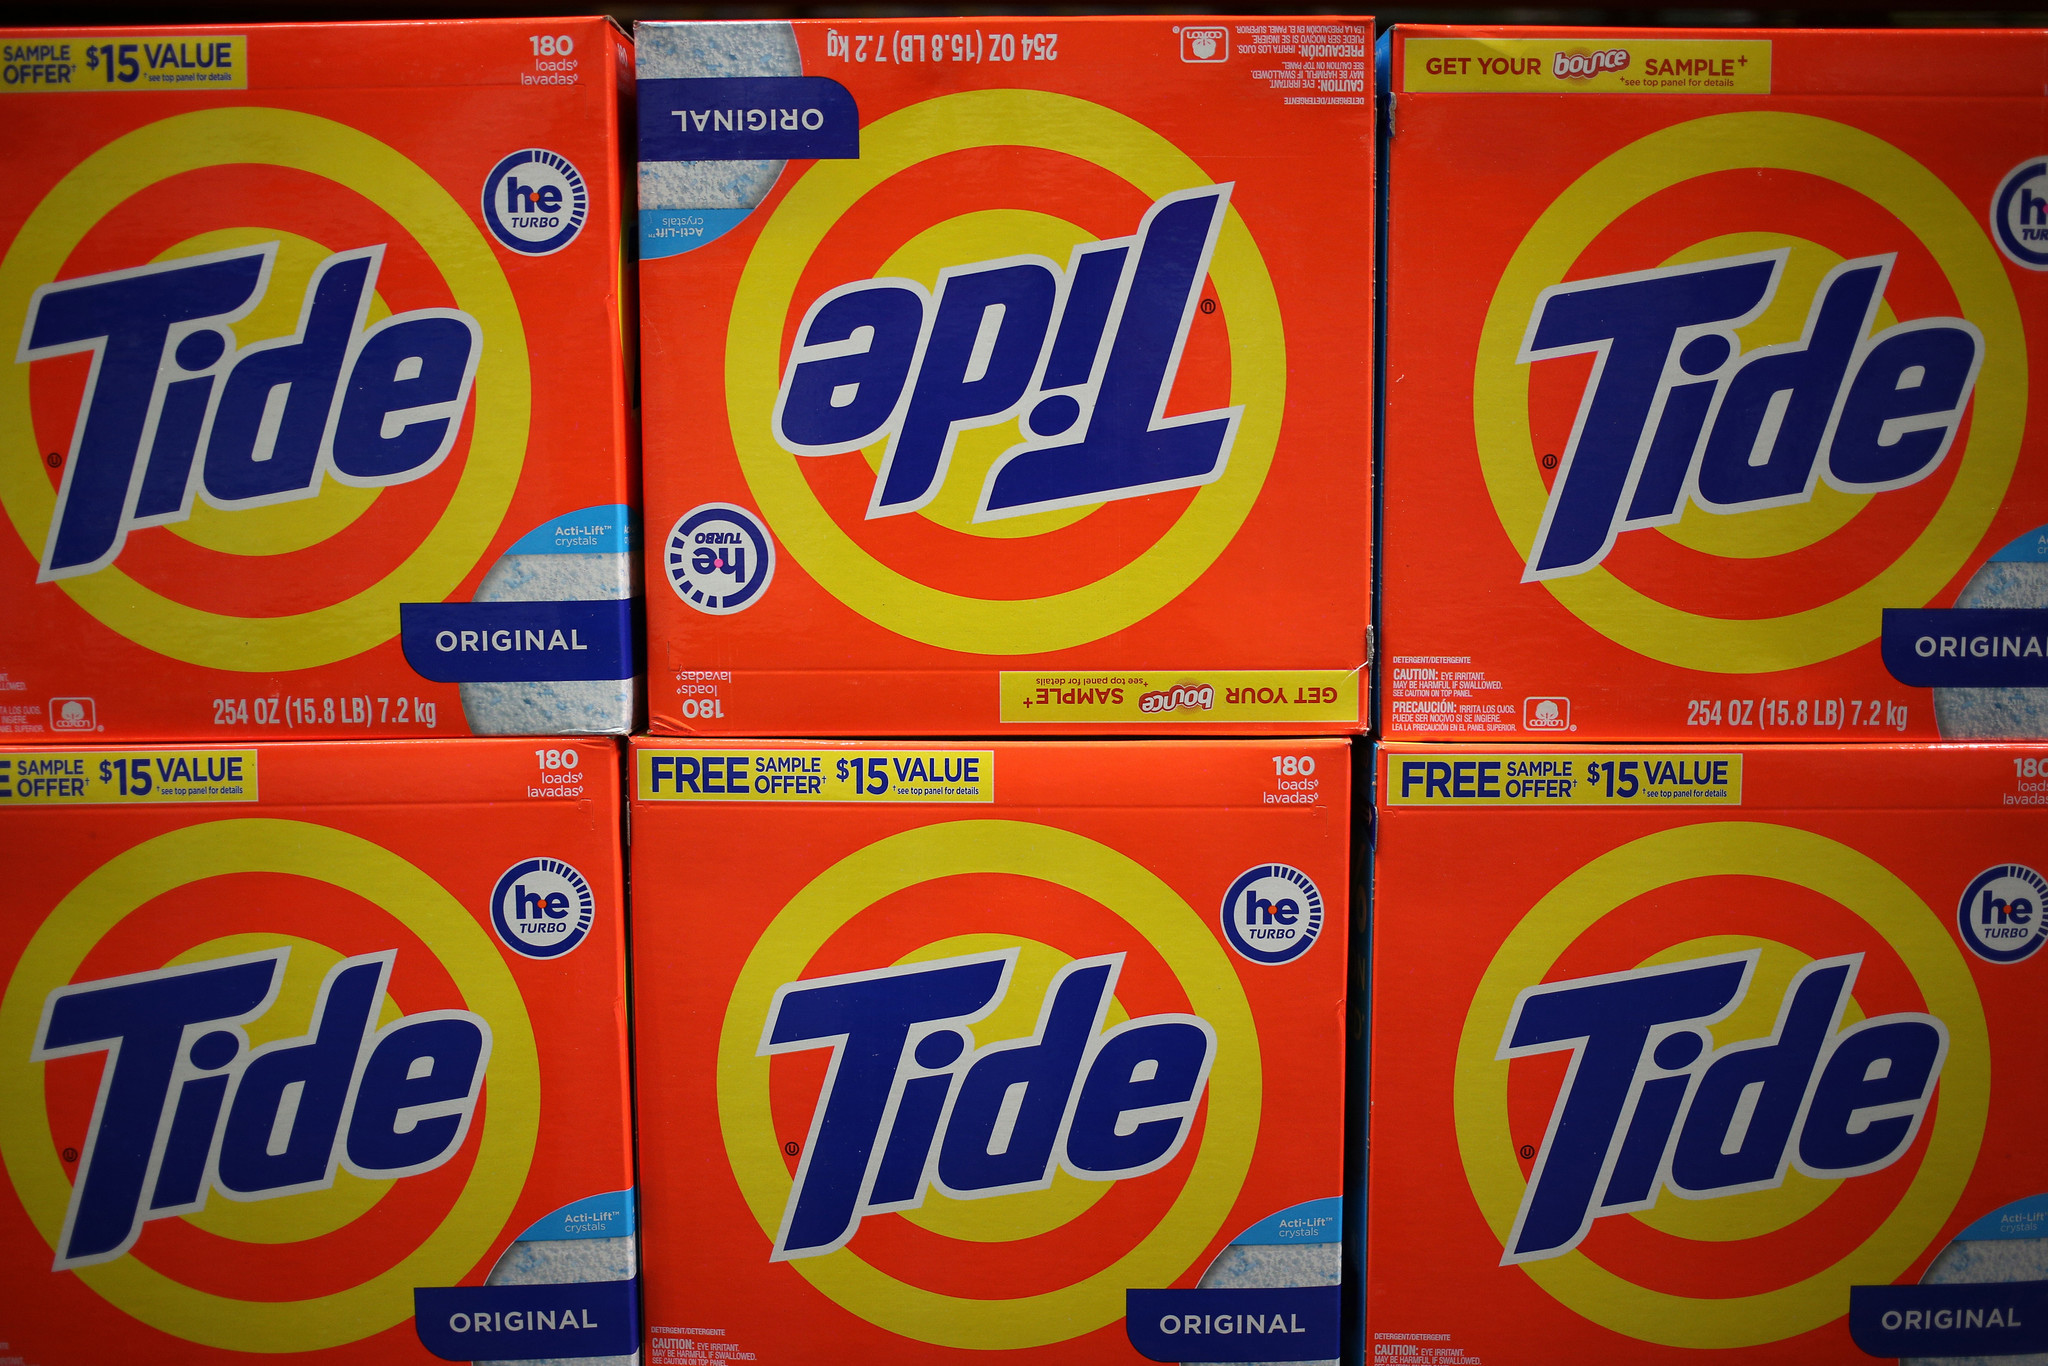 P&G under pressure as eco-friendly products surge